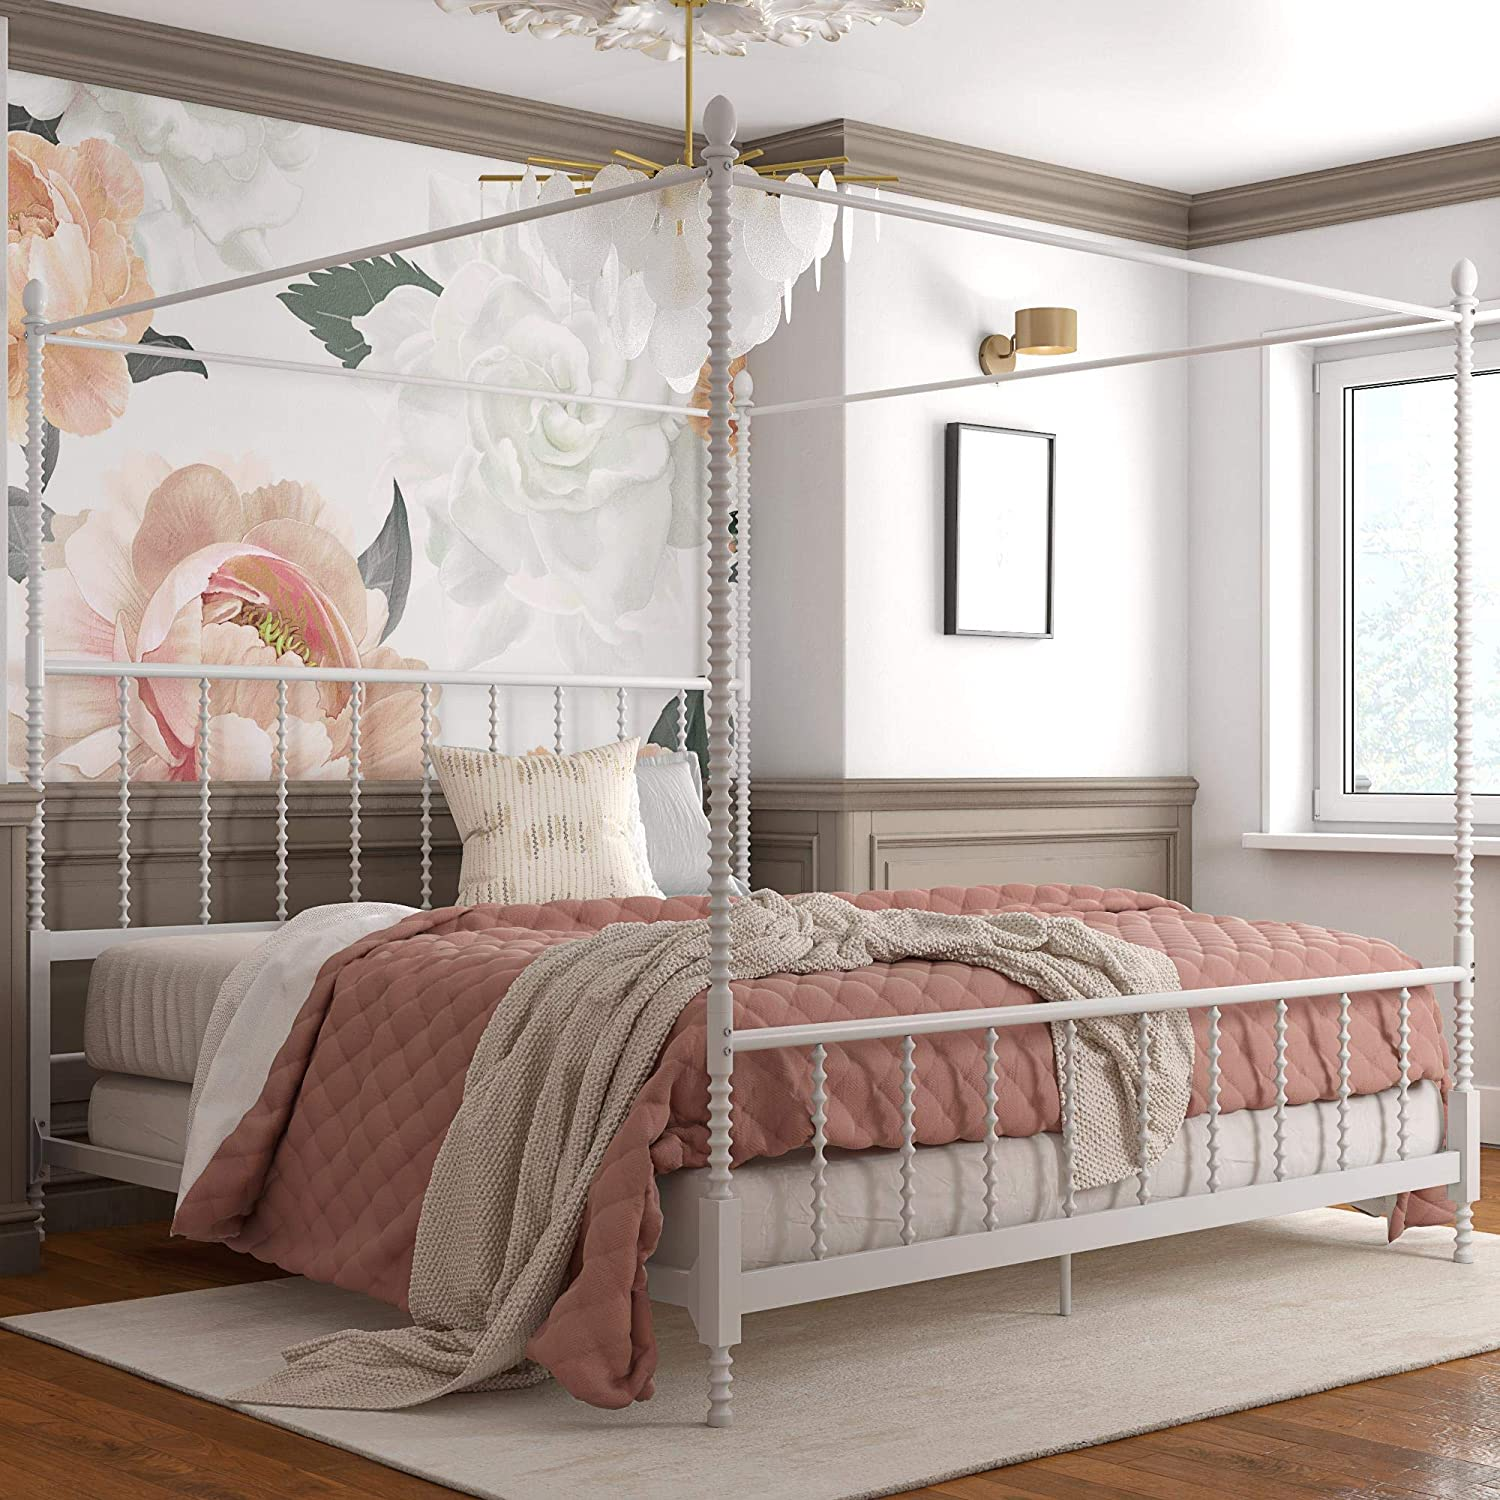 - Amazon.com: DHP Jenny Lind Metal Bed, 4 Post King Size Frame